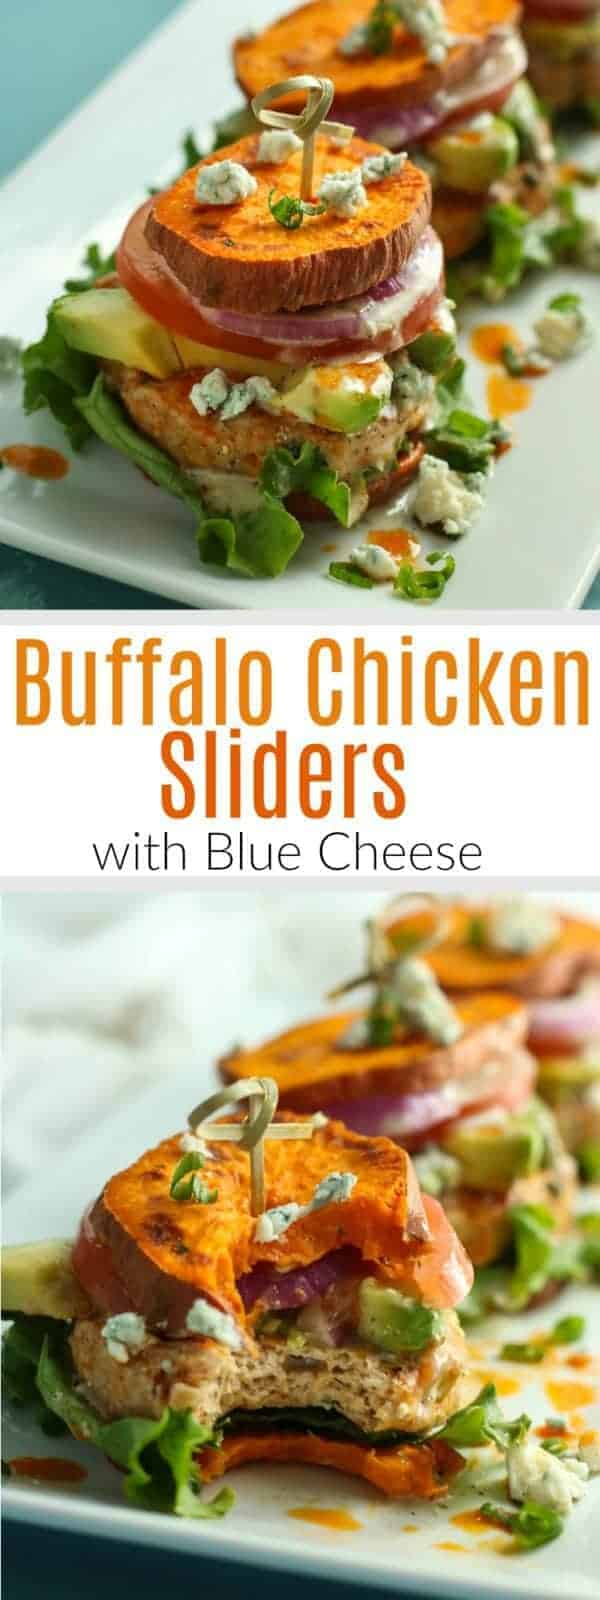 Buffalo Chicken Sliders | Buffalo wings meets sweet potato fries in these Buffalo Chicken Sliders! Serve with sliced onions, tomato, leaf lettuce and avocado, if desired. The Real Food Dietitians | http://therealfoodrds.com/buffalo-chicken-sliders/